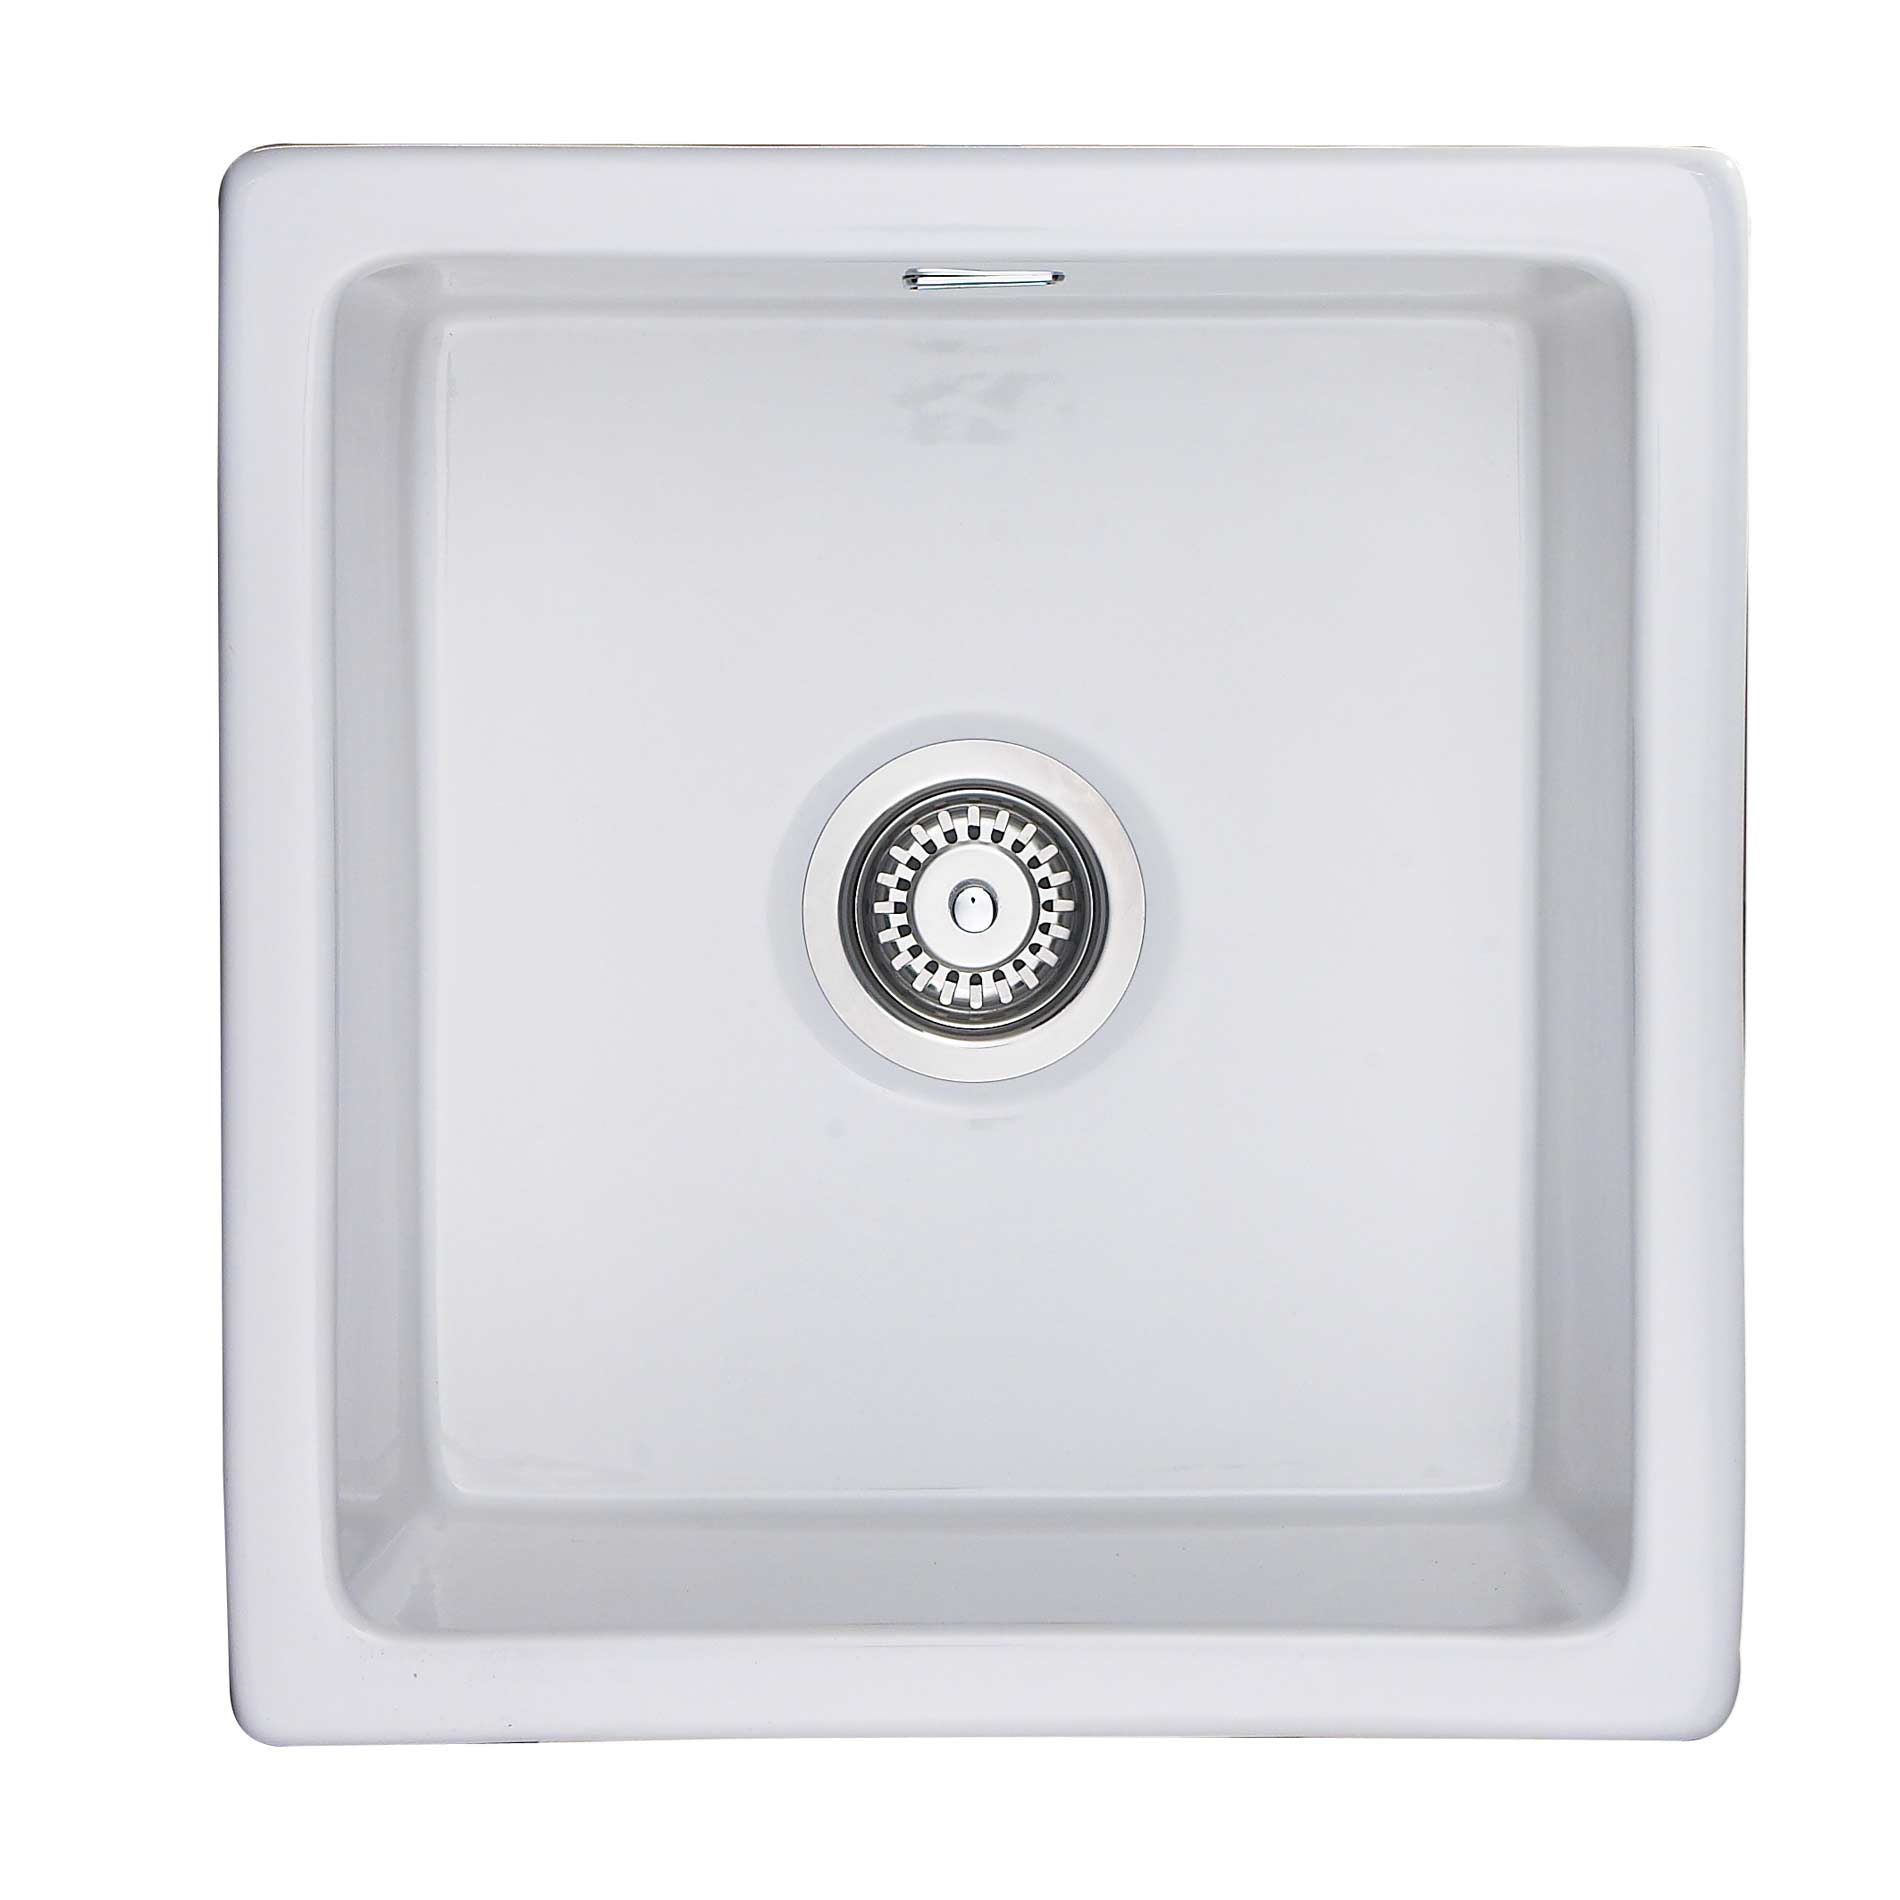 Rangemaster Kitchen Sinks Rangemaster rustique crub4648wh ceramic sink kitchen sinks taps picture of rustique crub4648wh ceramic sink workwithnaturefo